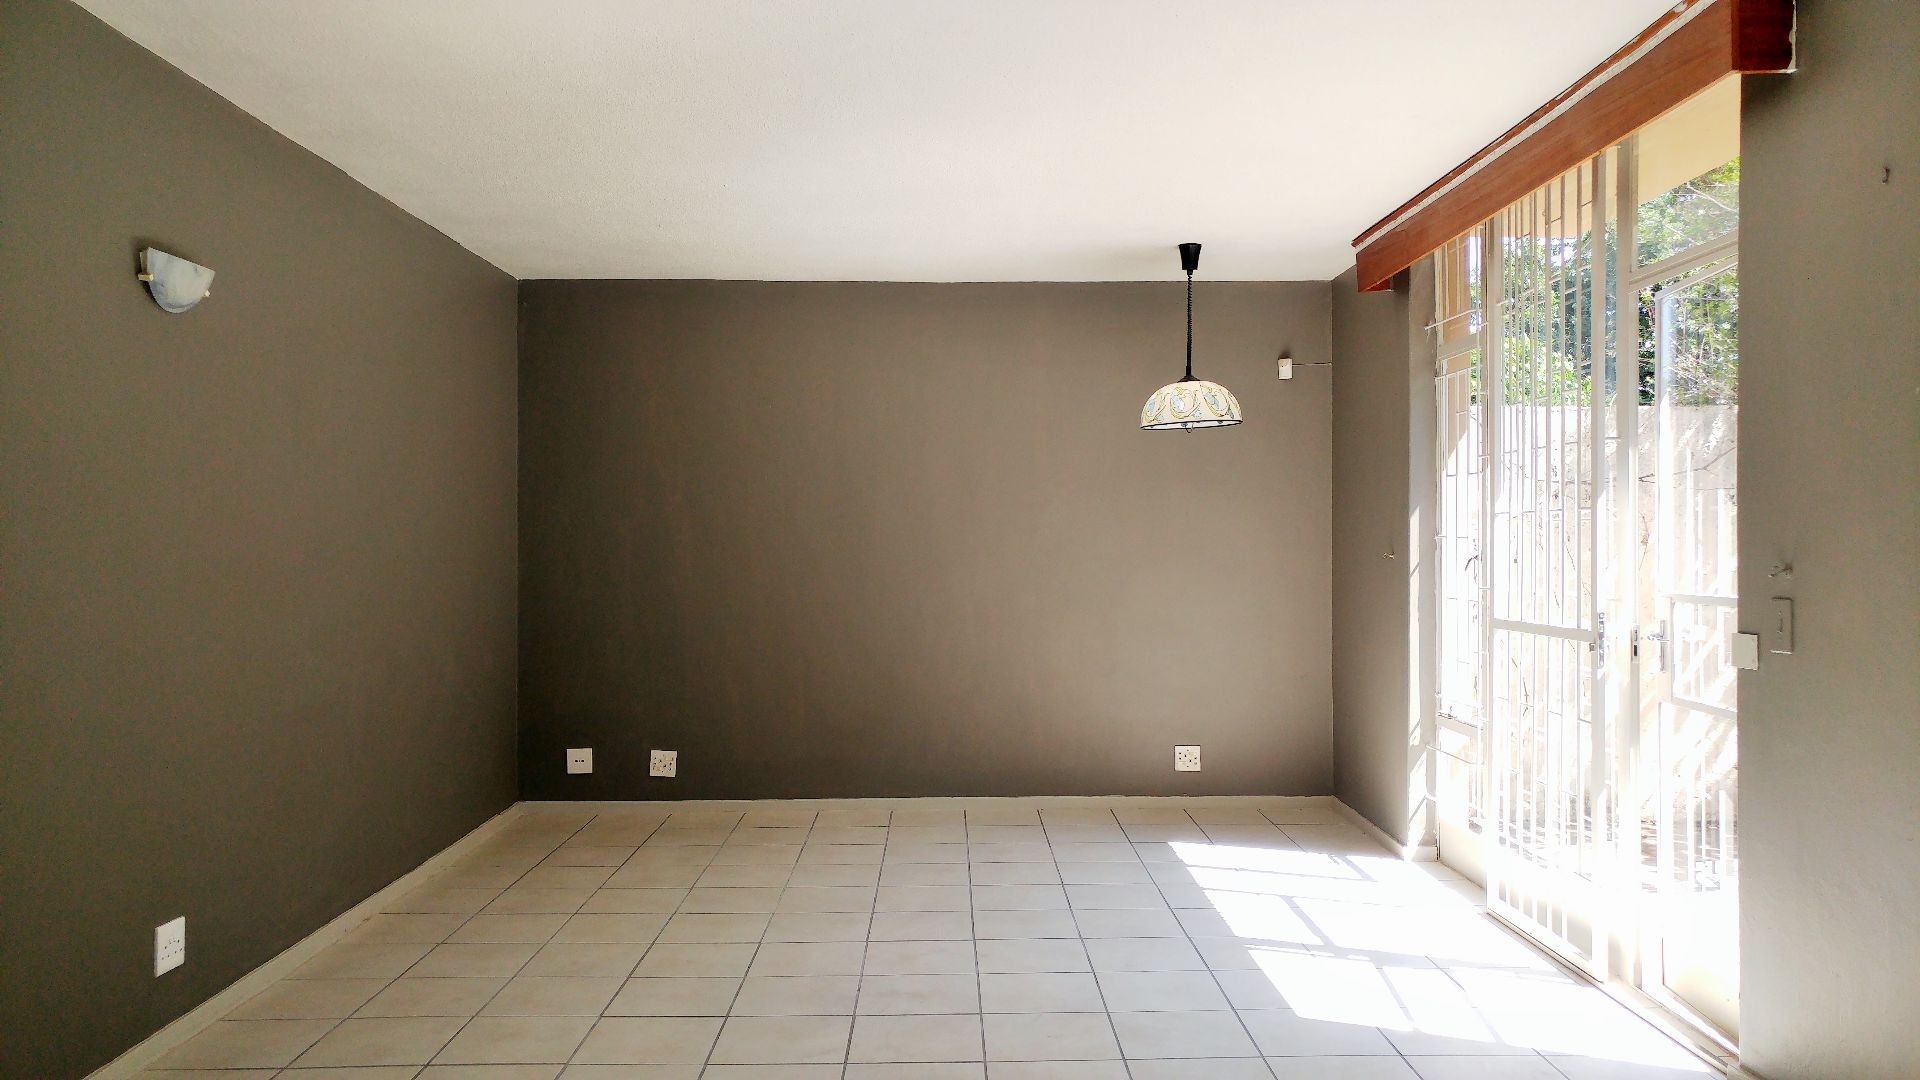 Potchefstroom Central property for sale. Ref No: 13547446. Picture no 13